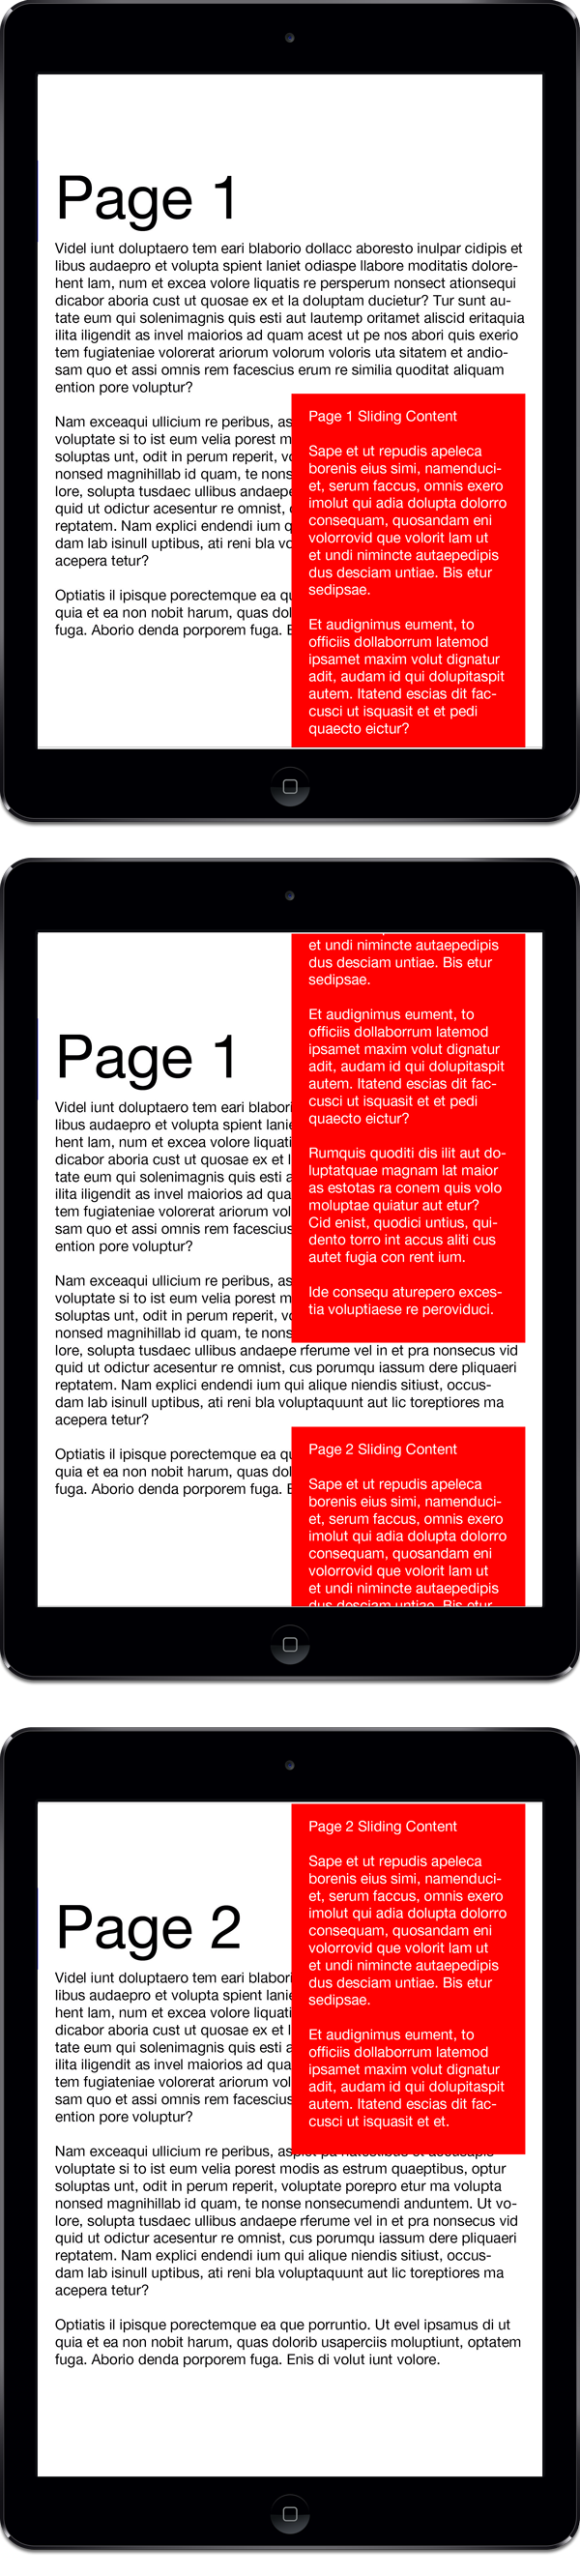 Review your document and swipe up to see how the Snapping feature snaps the A-Layer content on Page 2 into place.